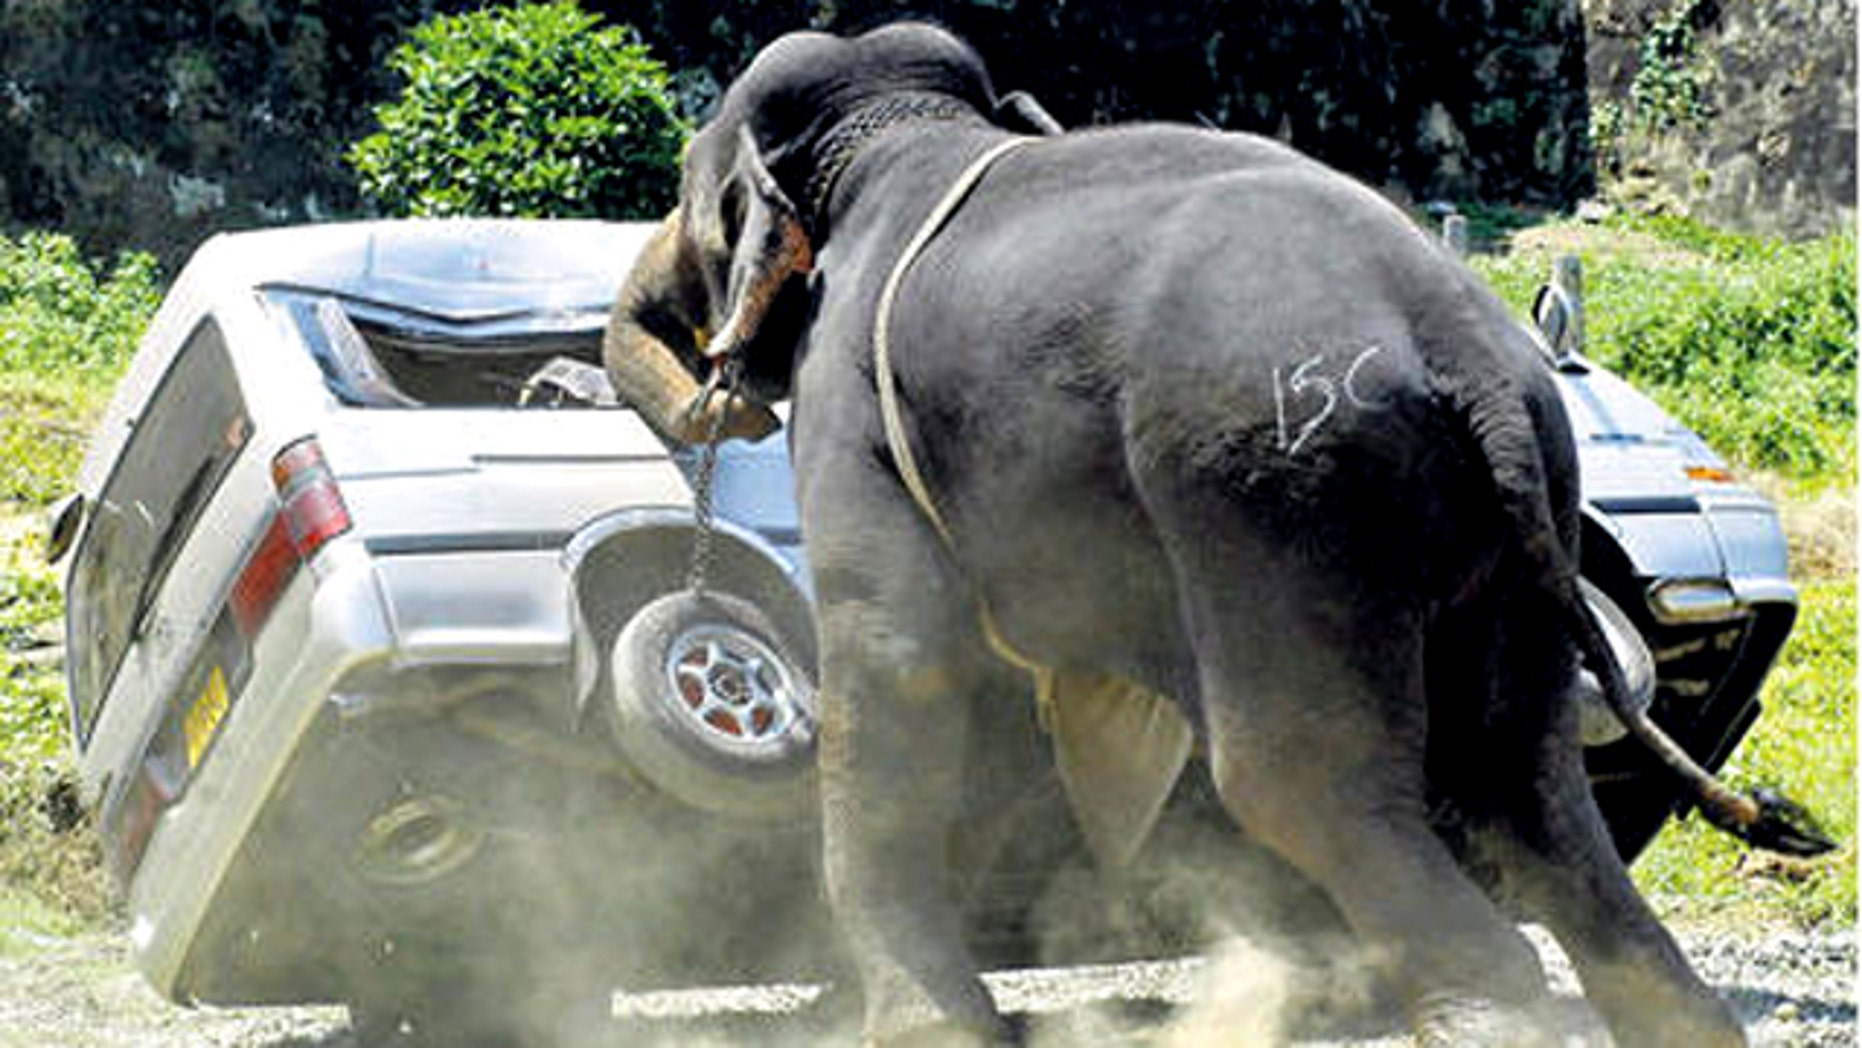 An elephant destoys a minibus after throwing its rider and going on a rampage in Galle, Sri Lanka, in this 2007 photo.